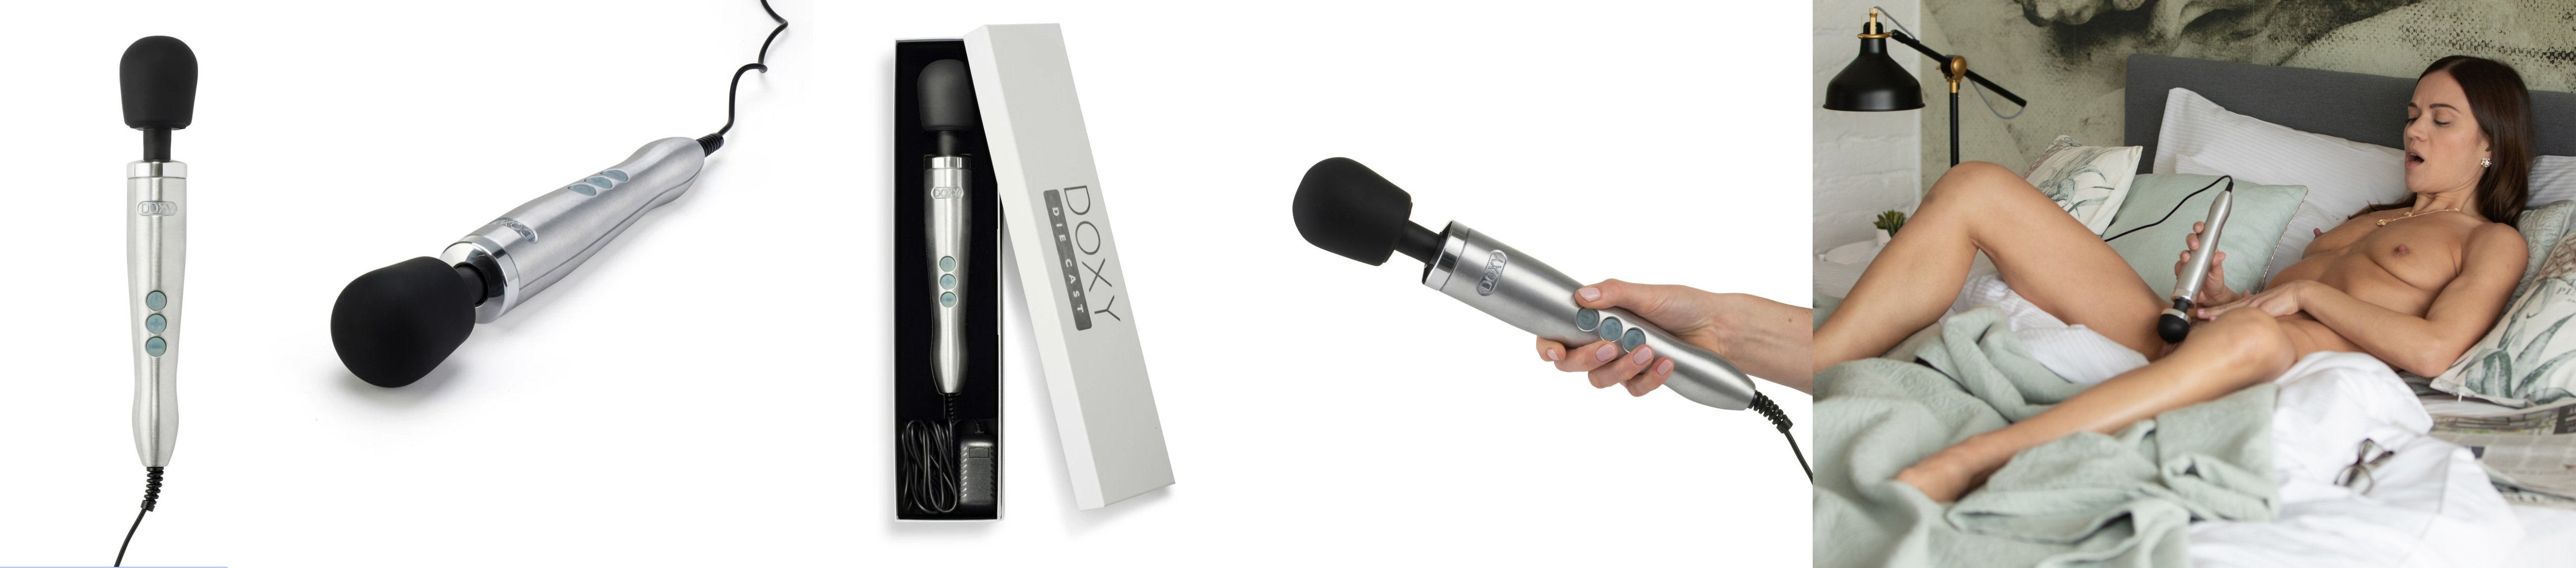 Doxy wand massager image for toy review